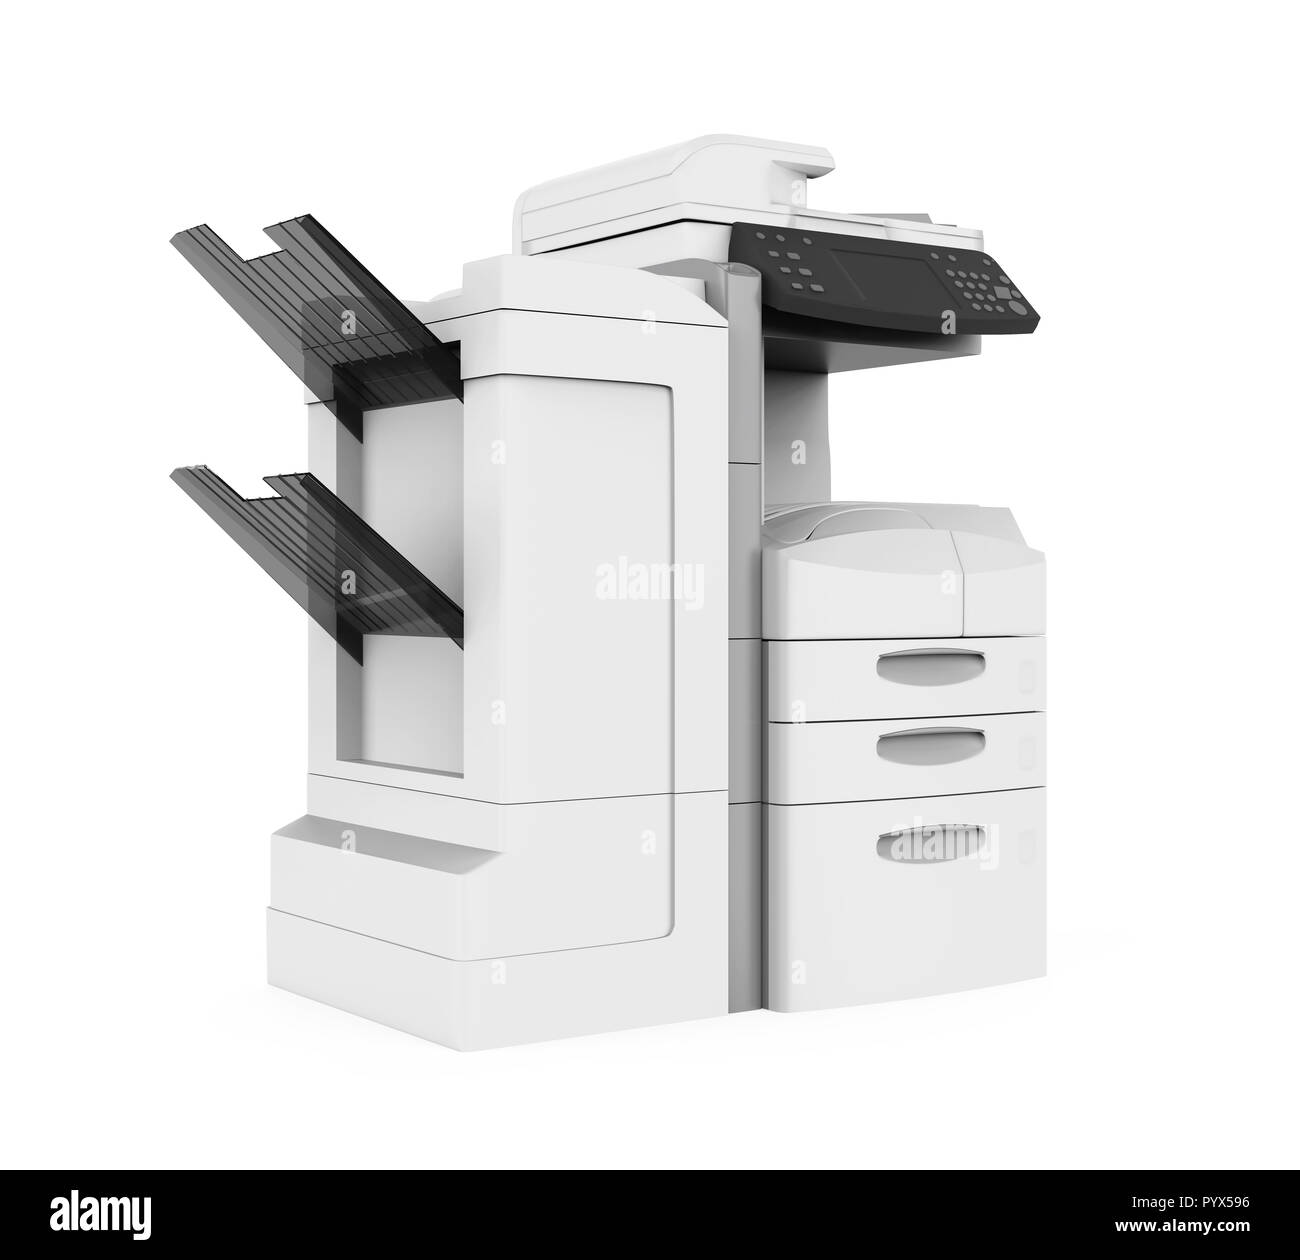 Office Multifunction Printer Isolated - Stock Image